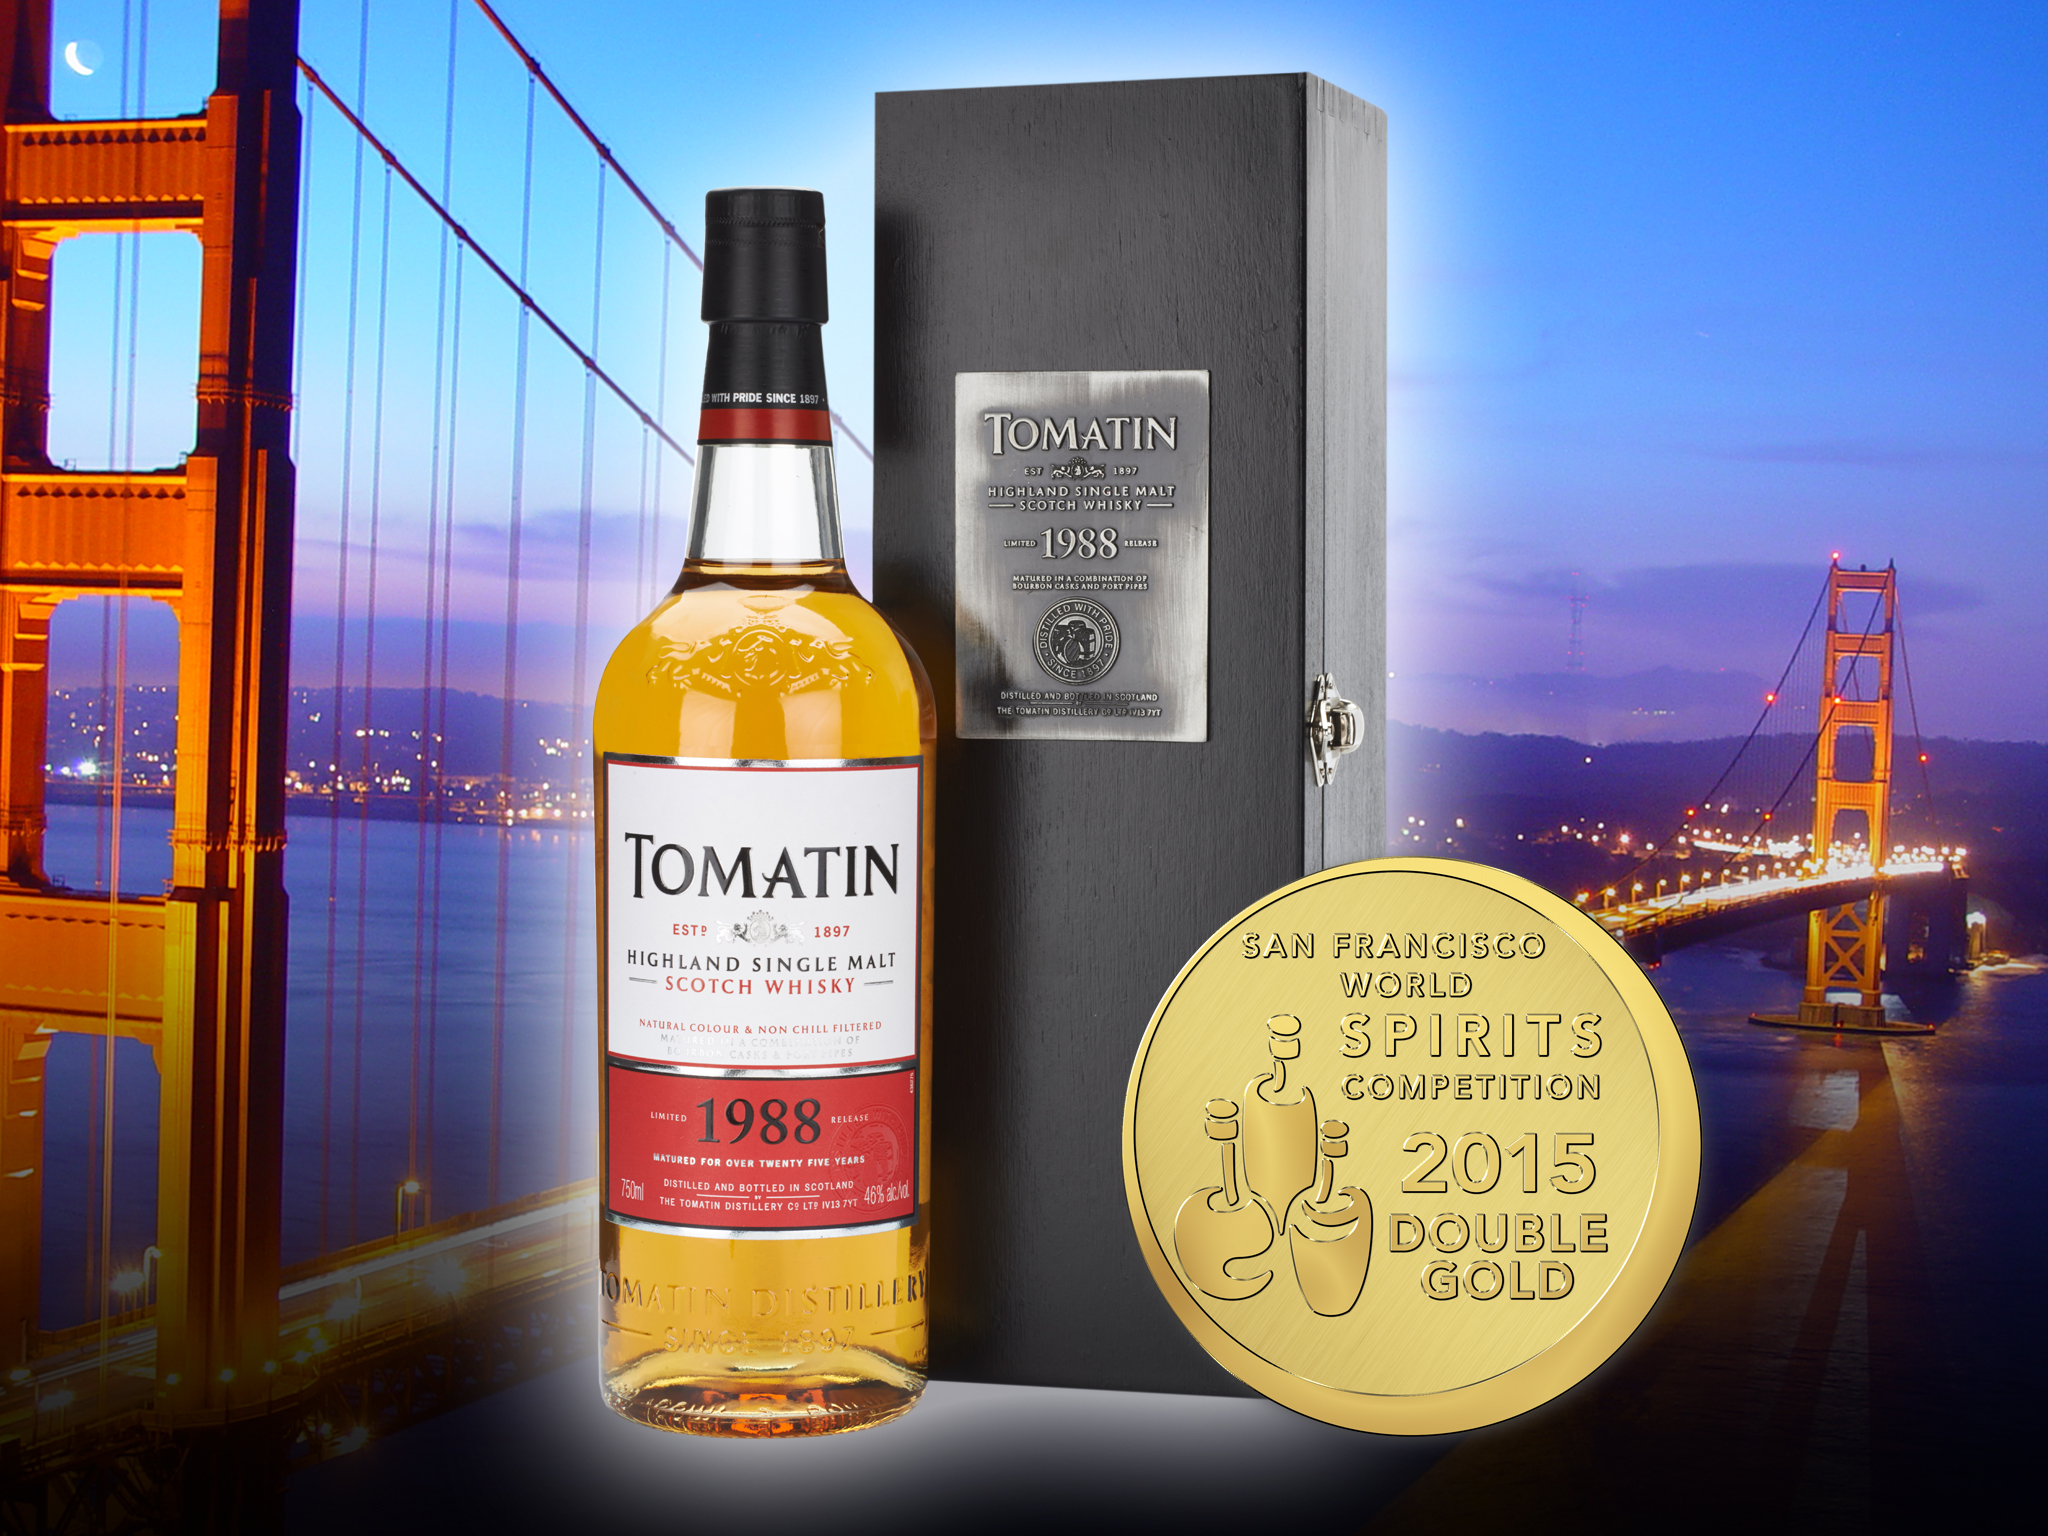 1988 Tomatin Double Gold